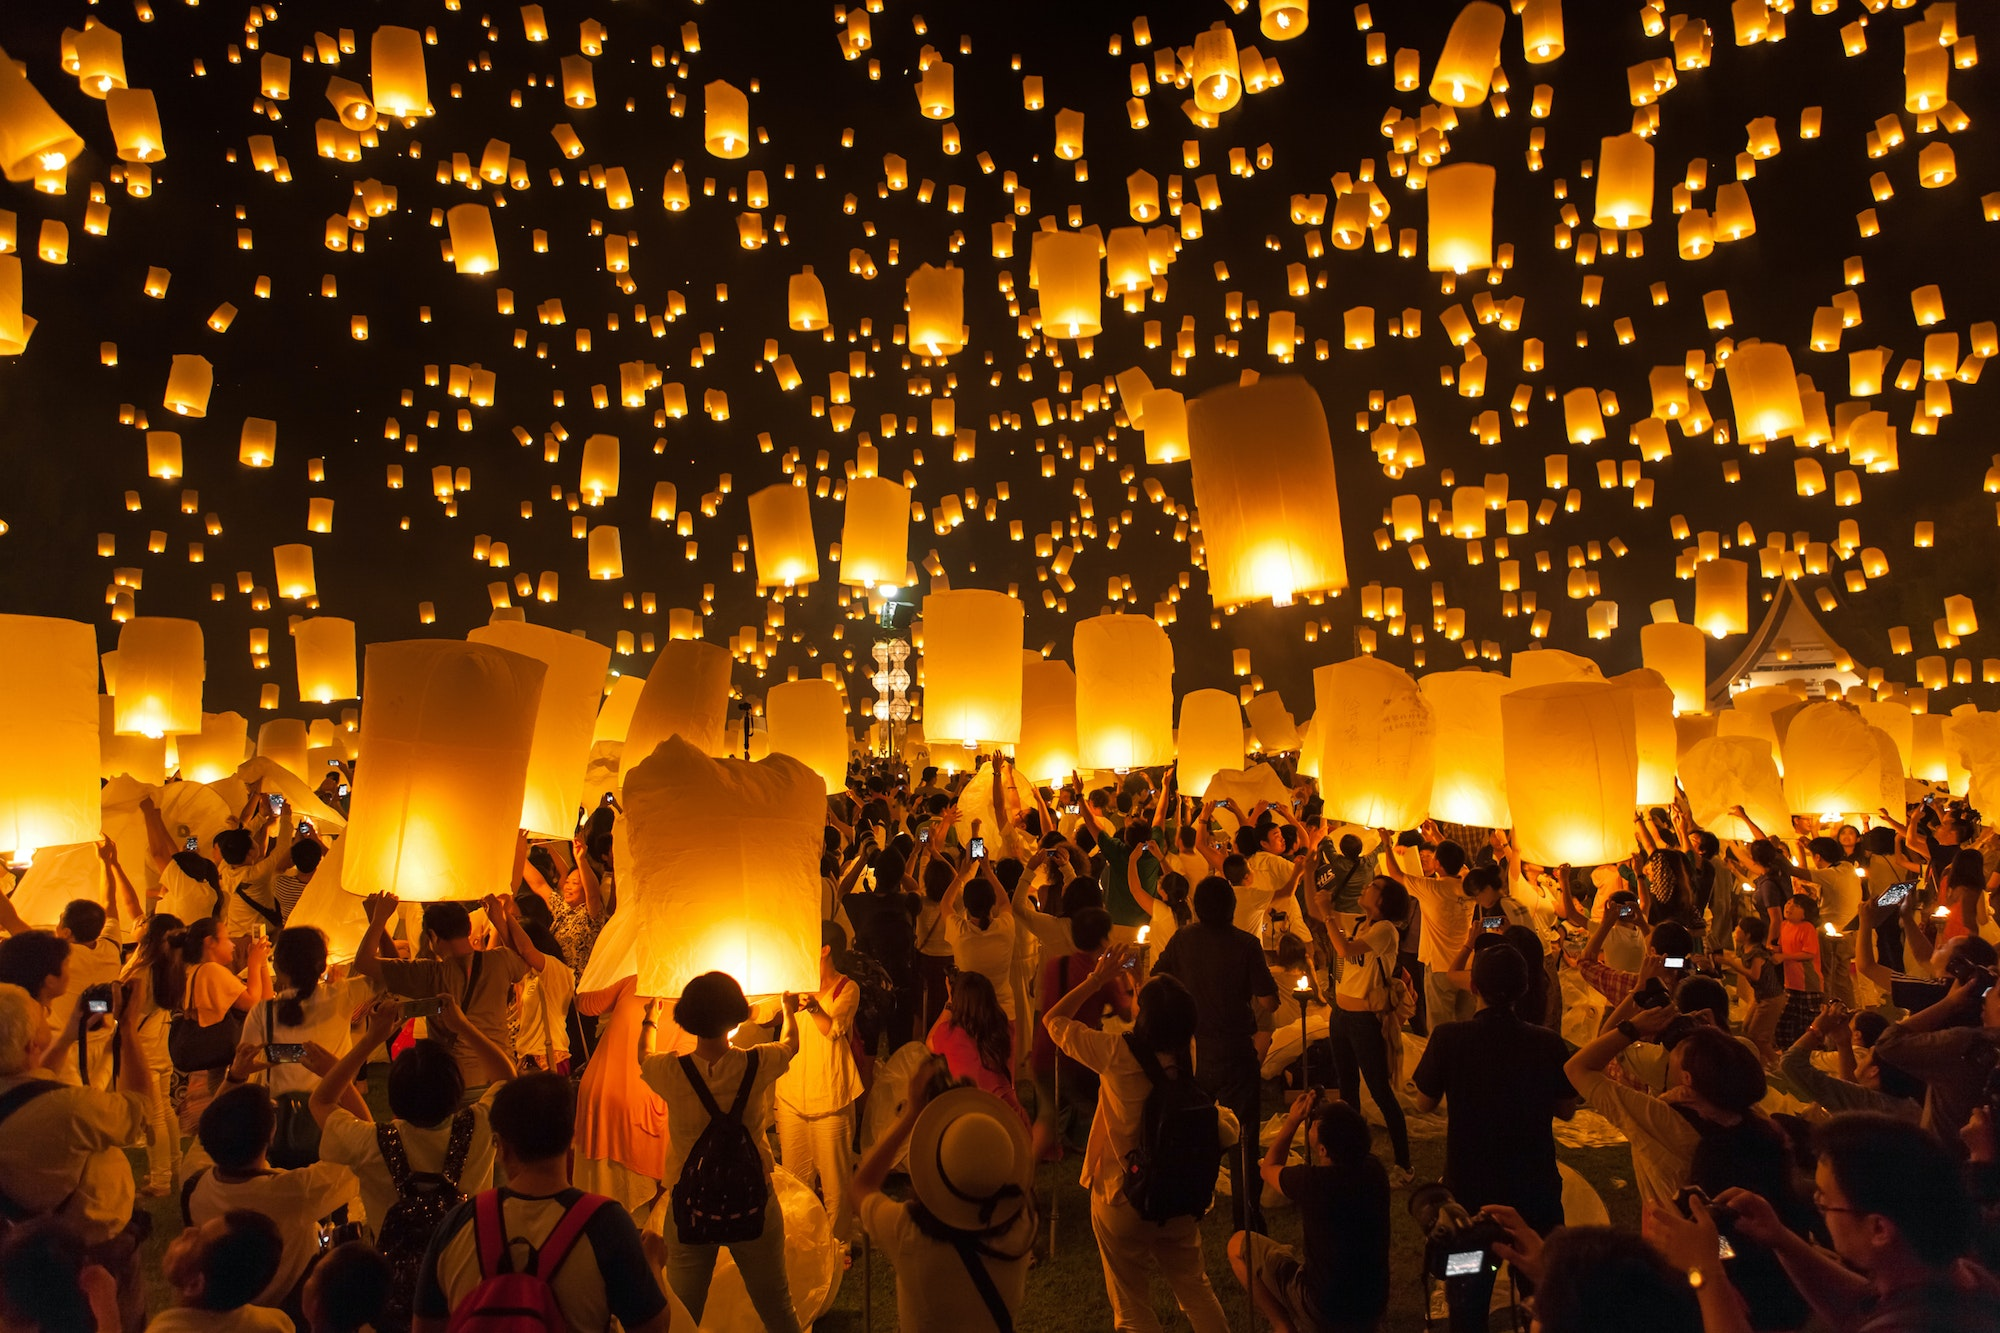 In Buddhist culture, releasing a floating lantern into the sky represents optimism and new beginnings.